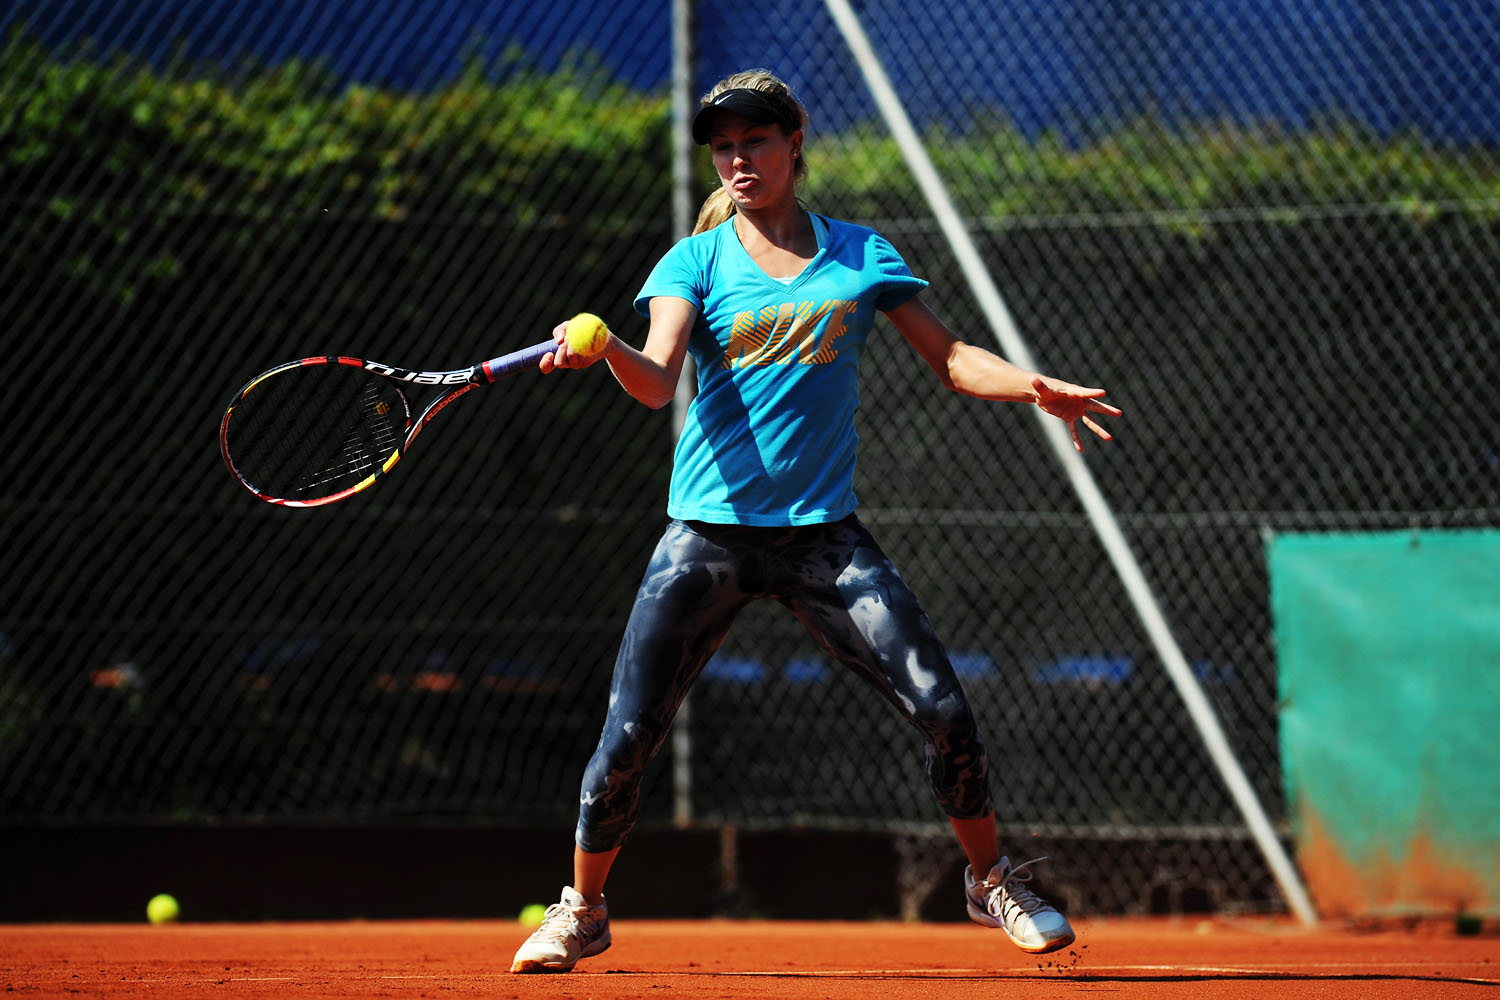 Eugenie Bouchard practices during a training session at the Nuernberger Versicherungscup on May 19, 2014.